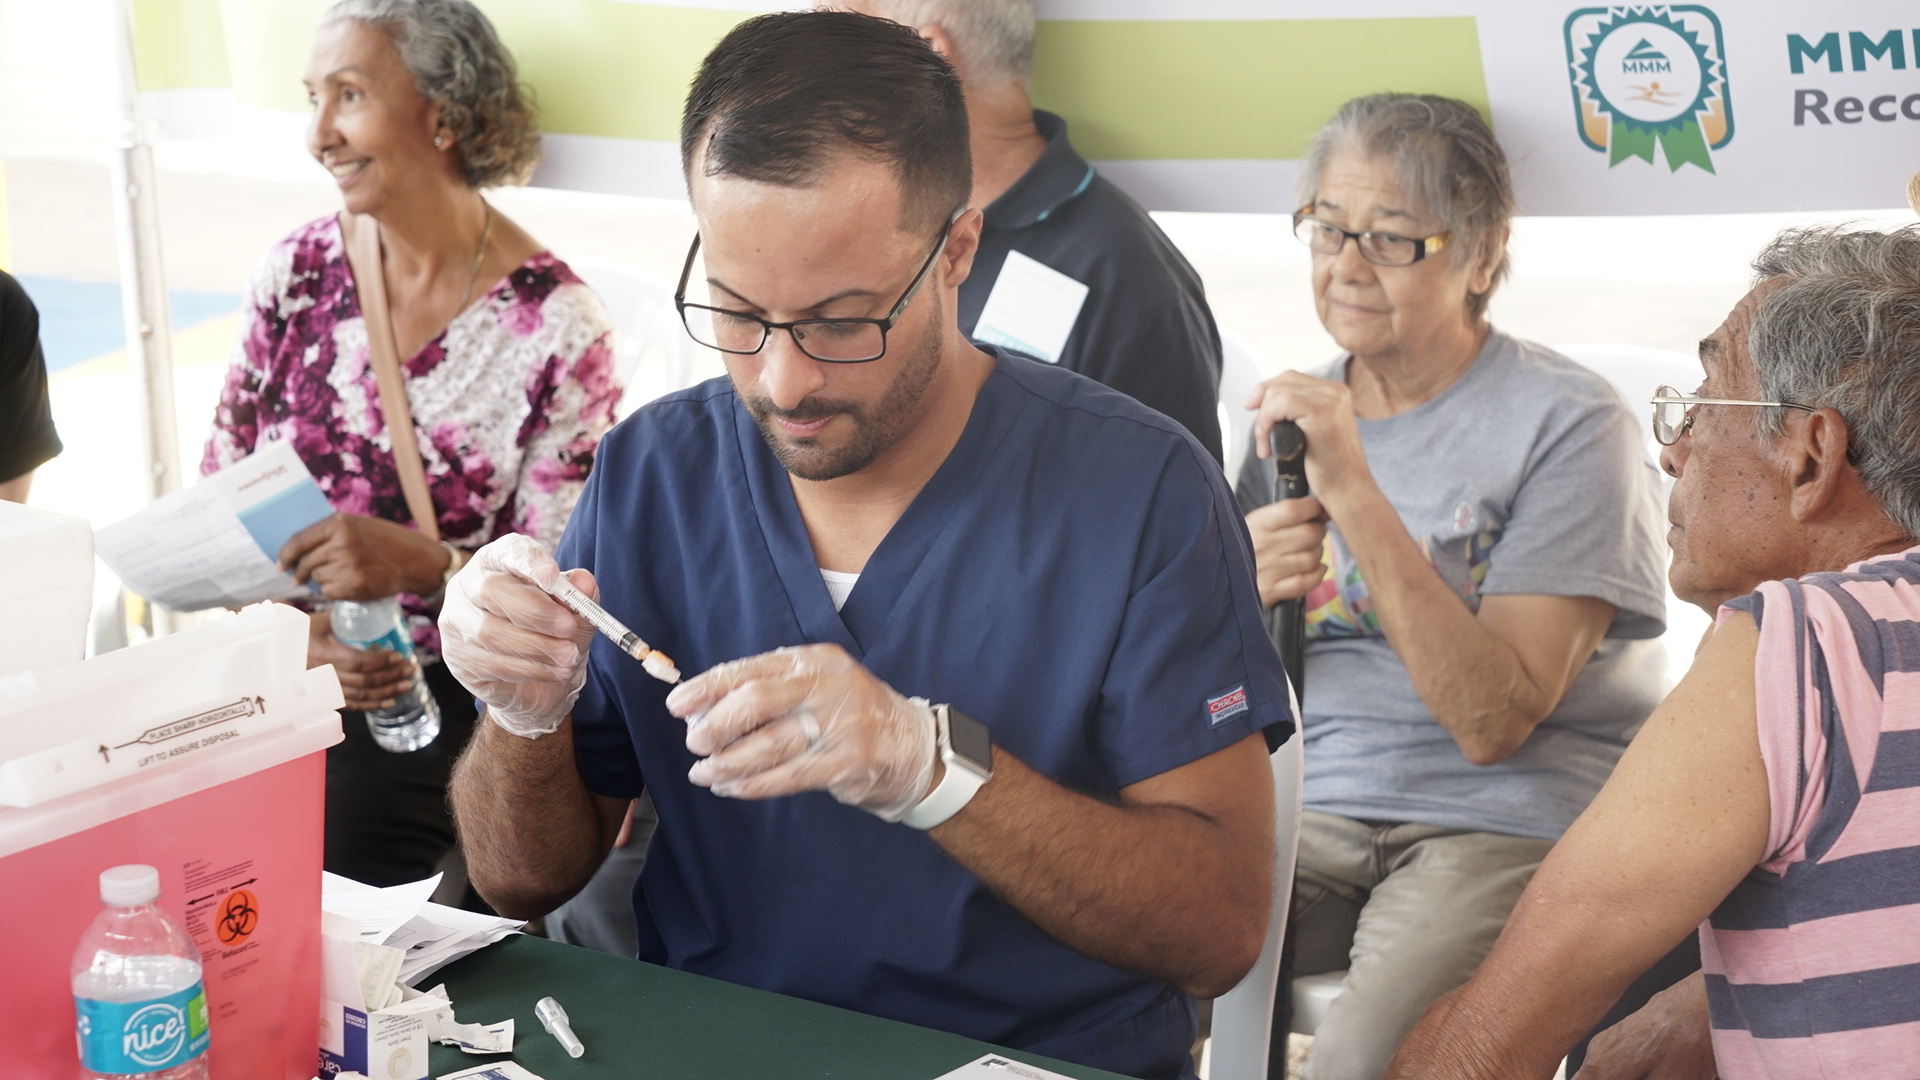 A flu immunization campaign takes place in Bayamon, Puerto Rico, in March, 2018. Direct Relief has supported vaccination efforts across the island, and is now expanding capacity for cold storage of immunizations and other medications. (Tony Morain/Direct Relief)